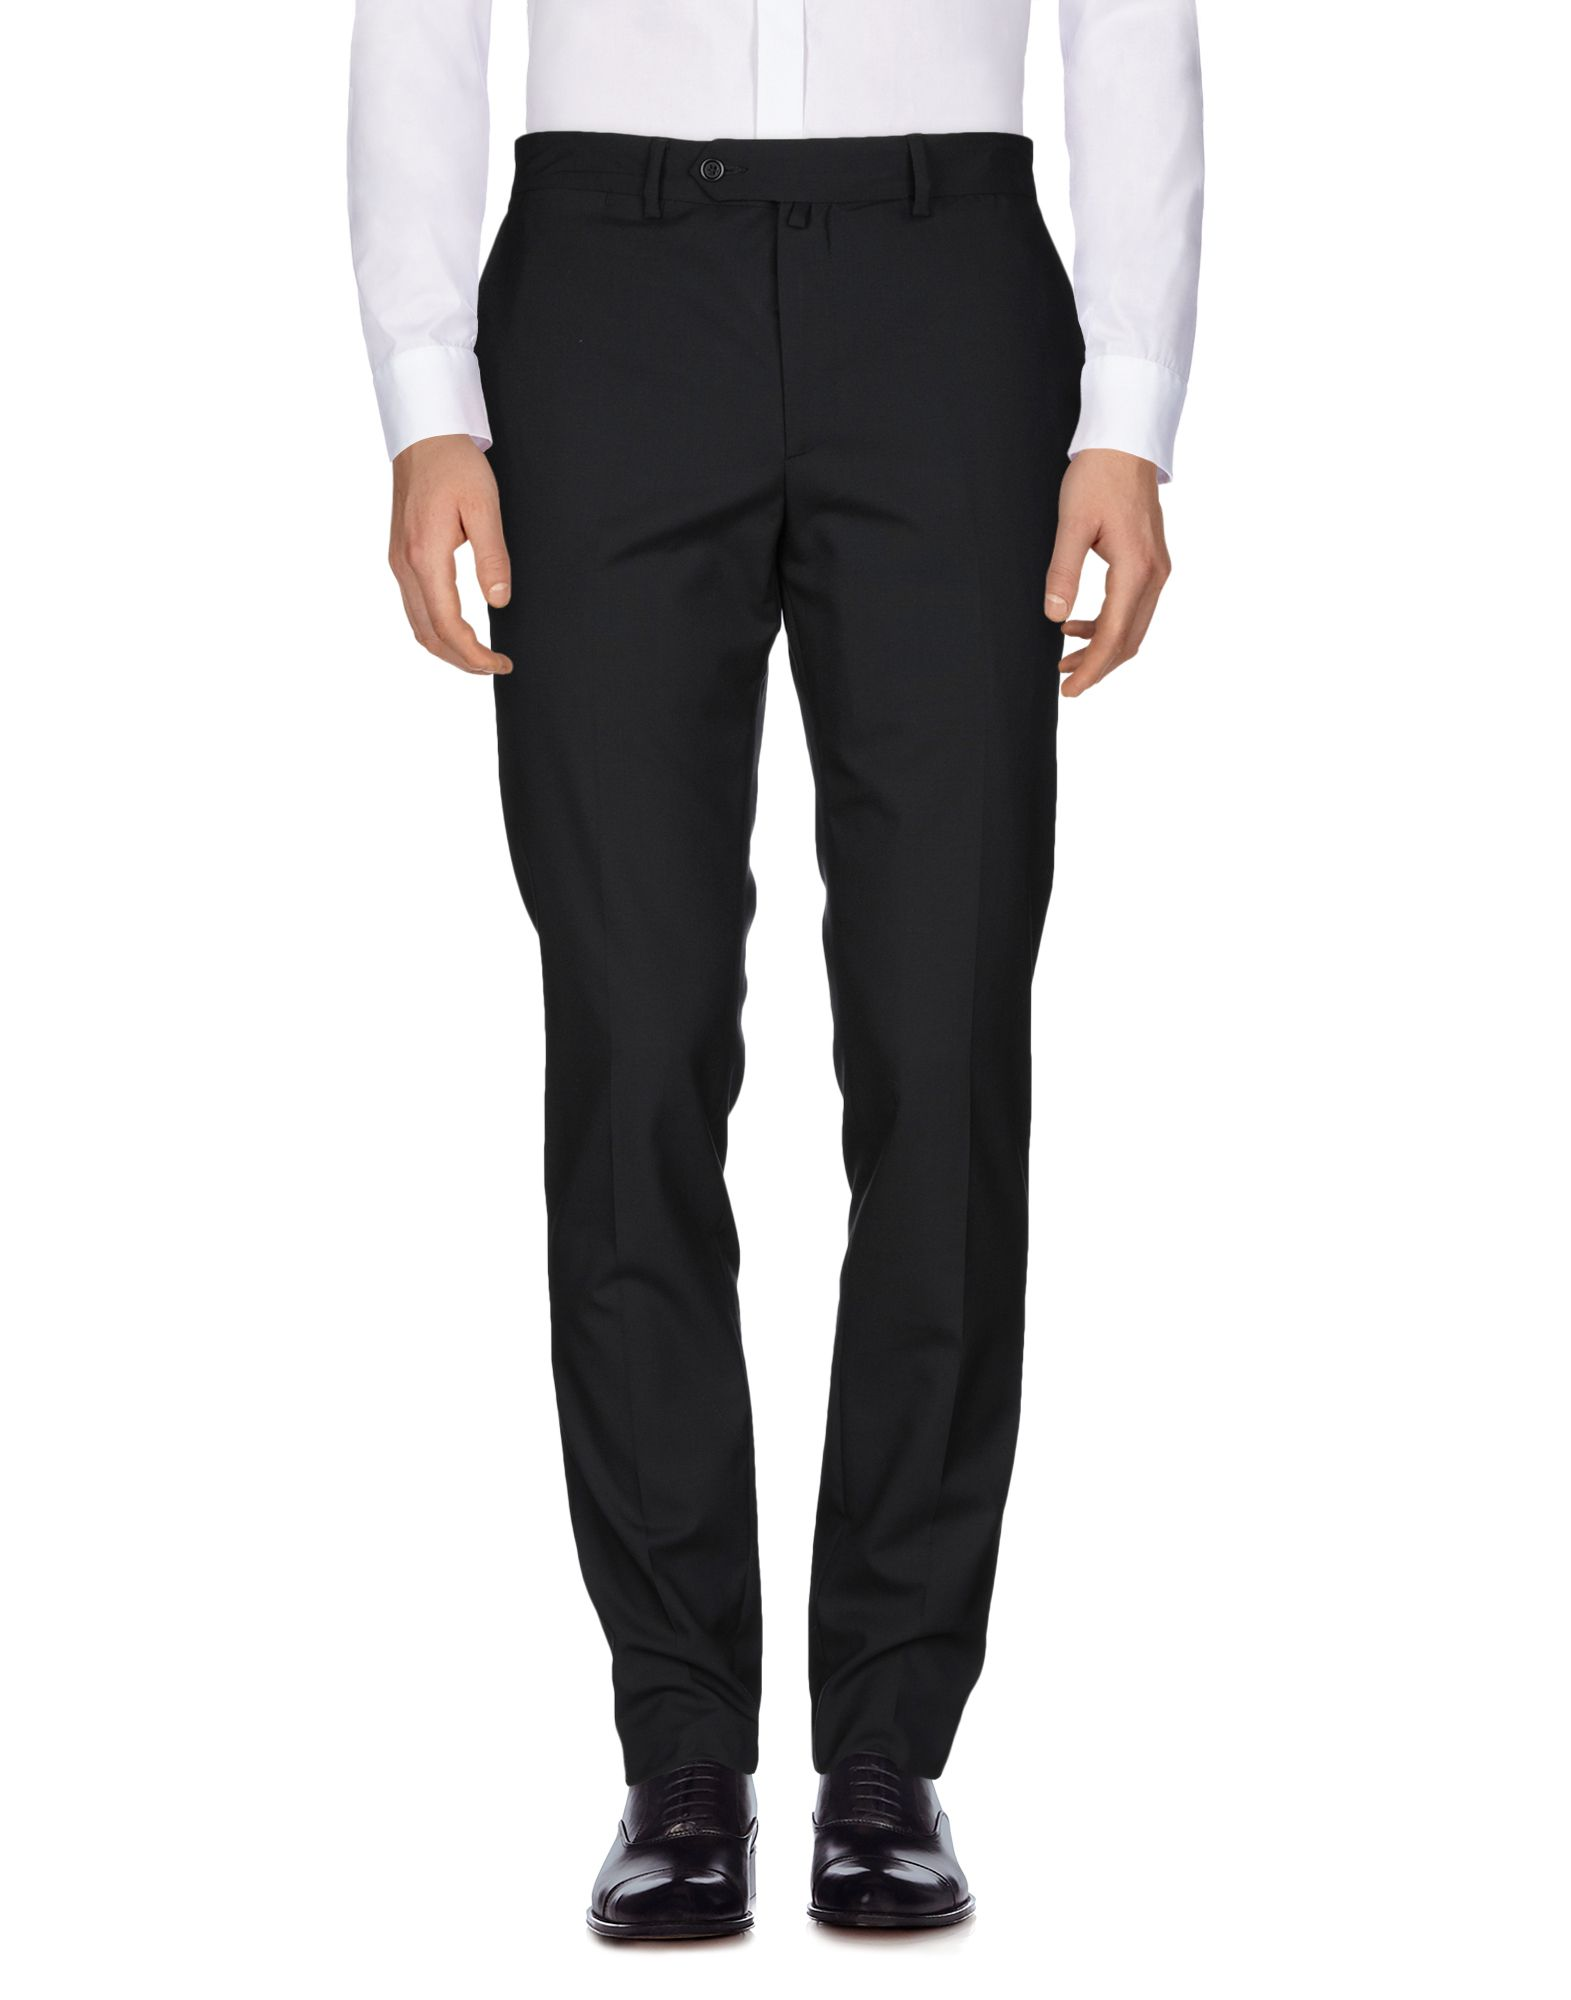 ALL APOLOGIES Casual Pants in Black